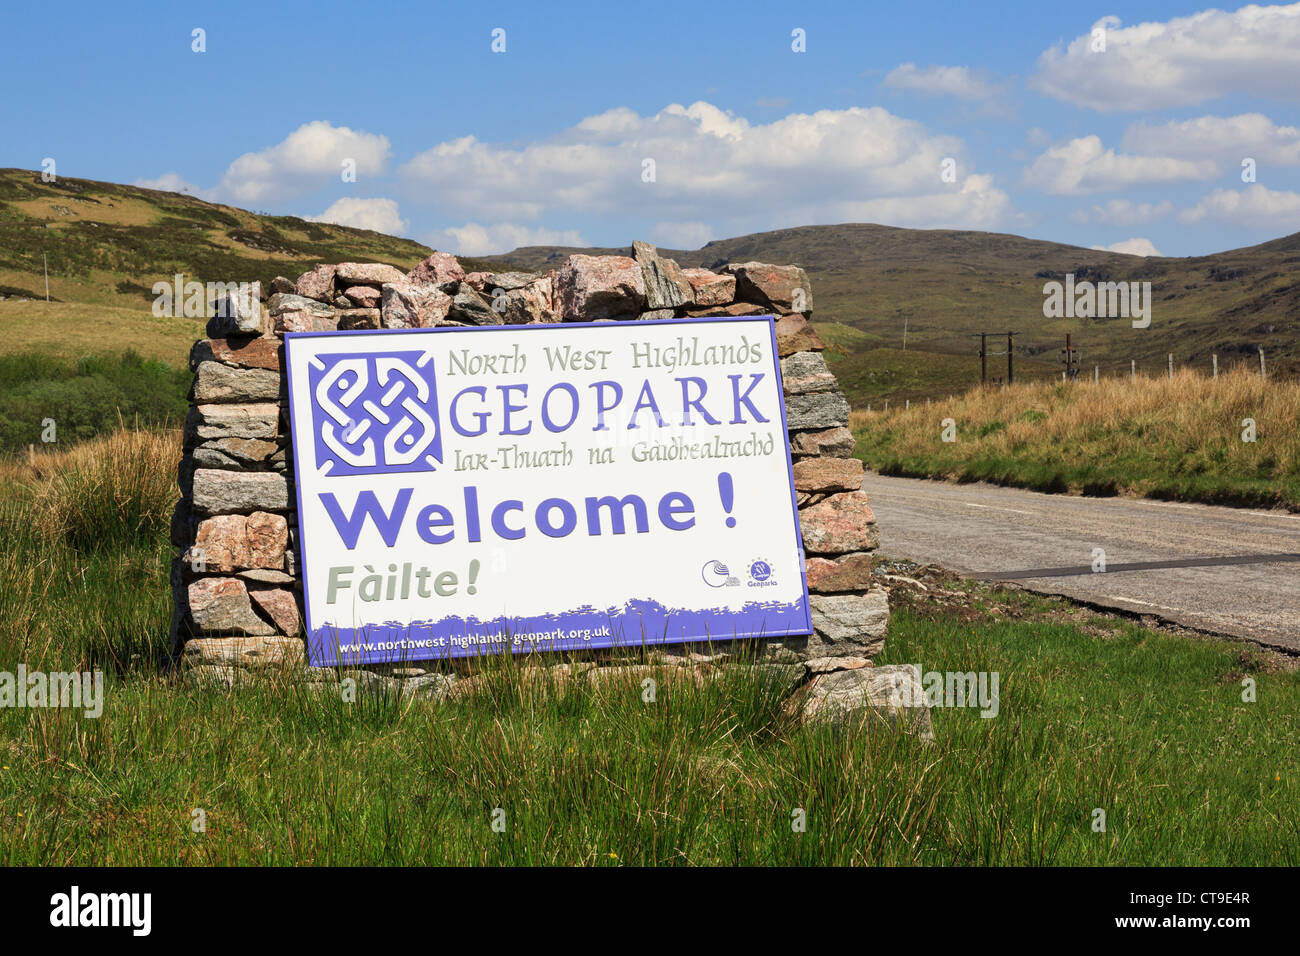 North West Highlands Geopark Gaelic bilingual welcome sign on Assynt peninsula in Ross and Cromarty, Highland, Scotland, - Stock Image